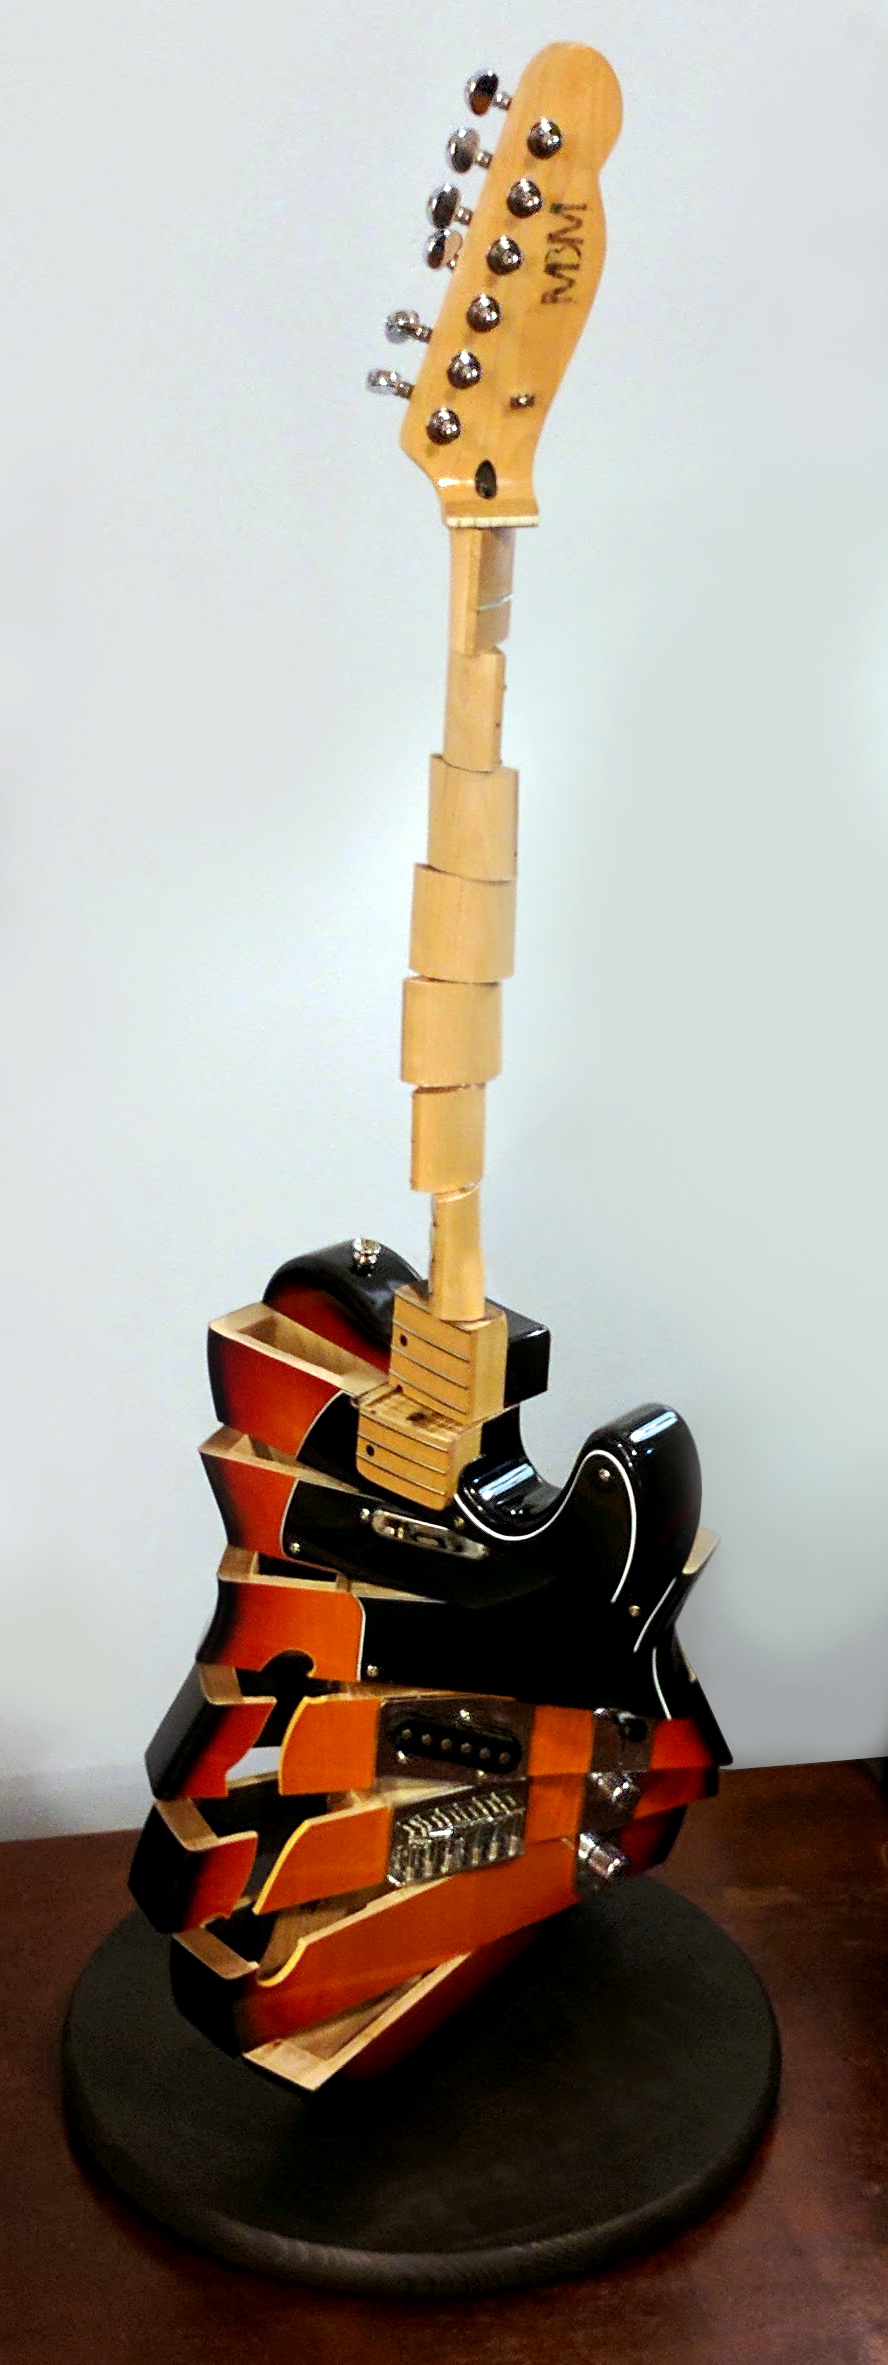 'Rain City Two'    Broken electric guitar, Mixed Media. 2016   Donated to the Rain City Rock Camp for Girls annual charity auction.